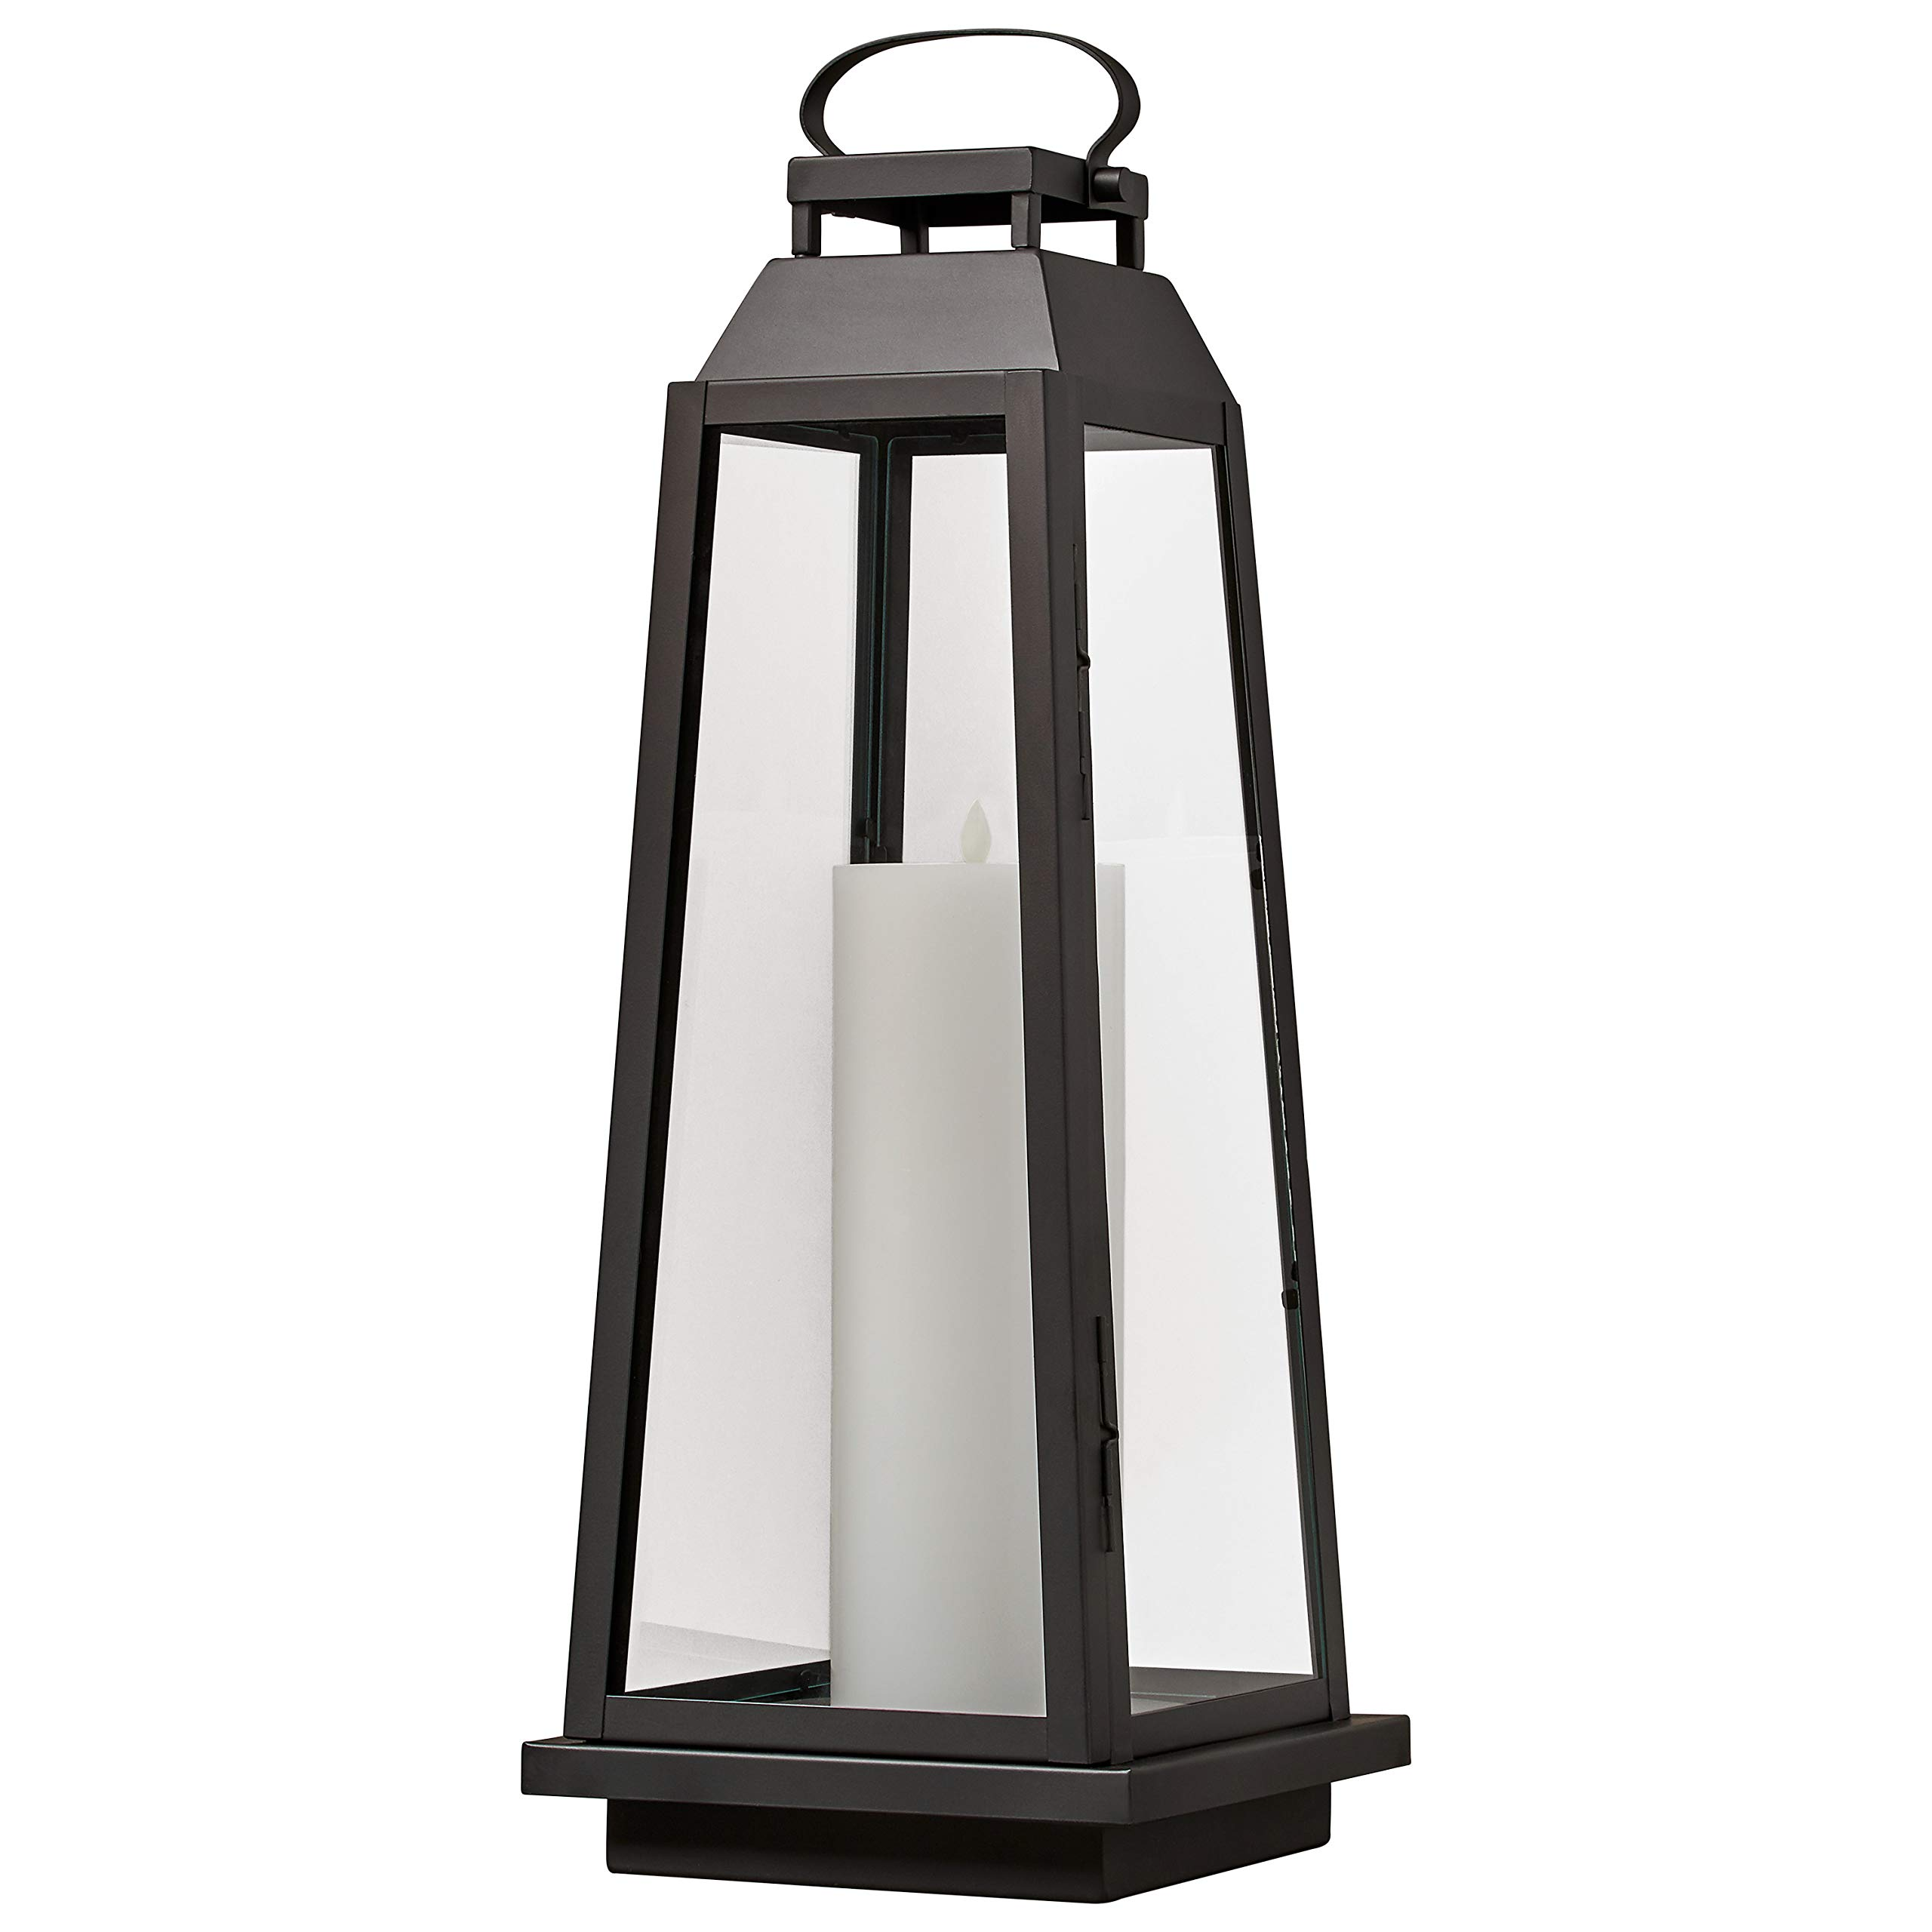 Stone & Beam Modern Traditional Decorative Metal and Glass Lantern with Candle, 25''H, Black, For Indoor Outdoor Use by Stone & Beam (Image #1)